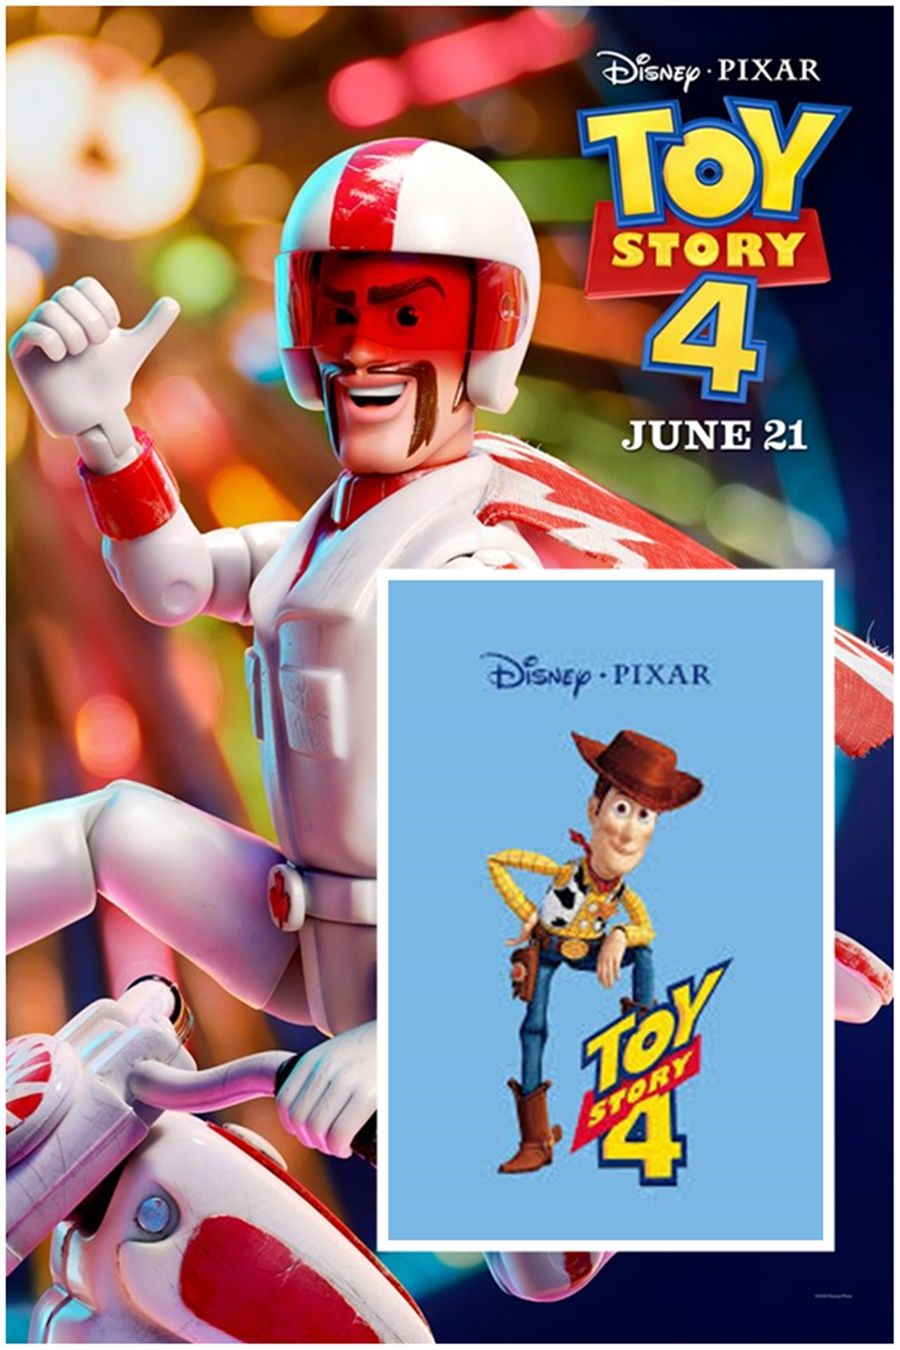 Toy Story 4 Regarder Film Complet Francais 2019 Toy Story Movies Tv Shows Online